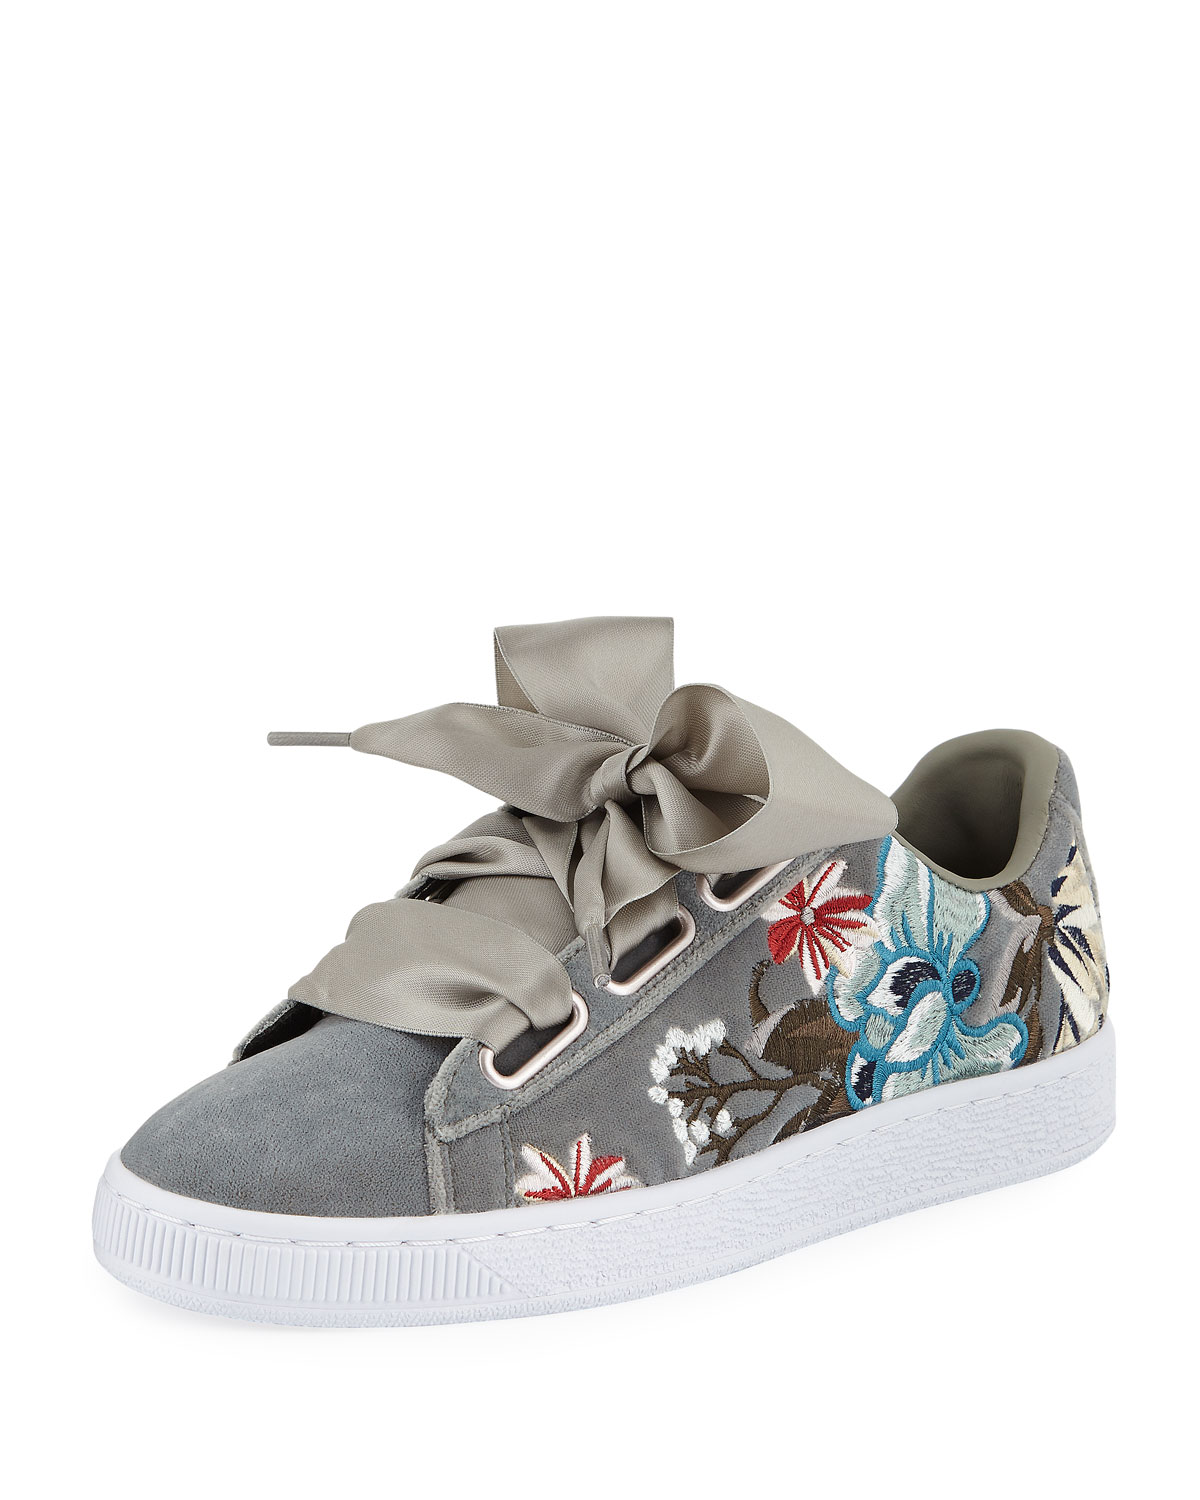 73667979829 Puma Basket Heart Hyper Embroidered Sneakers